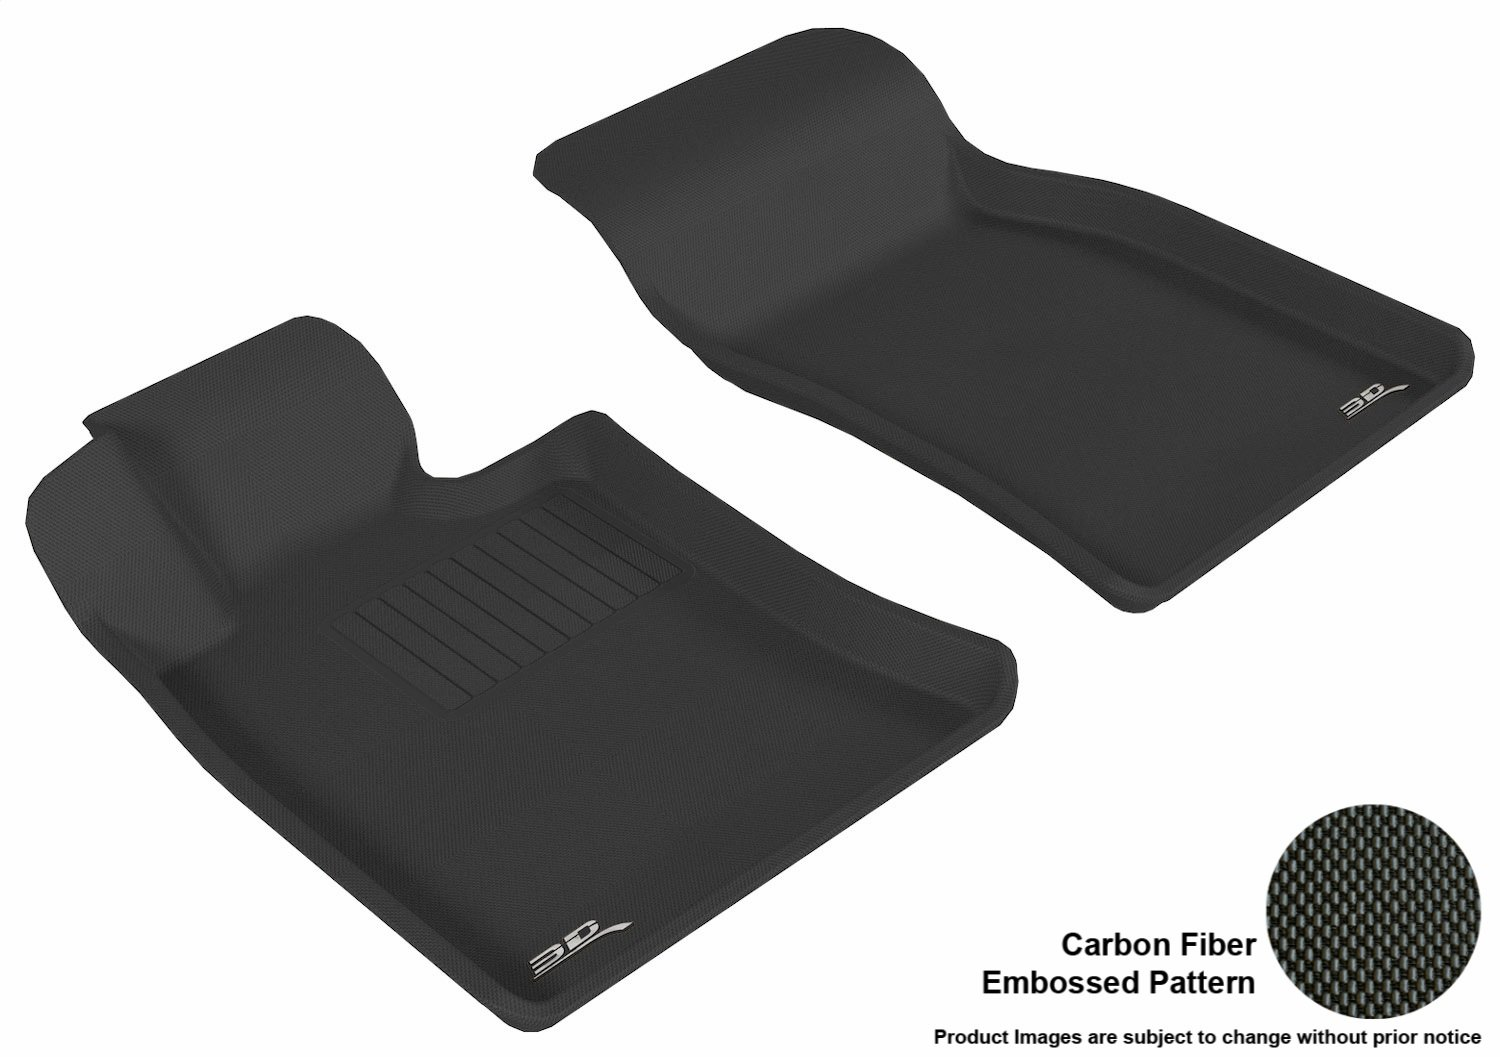 3D MAXpider Front Row Custom Fit All-Weather Floor Mat for Select MINI Models L1MN00211509 Black Kagu Rubber